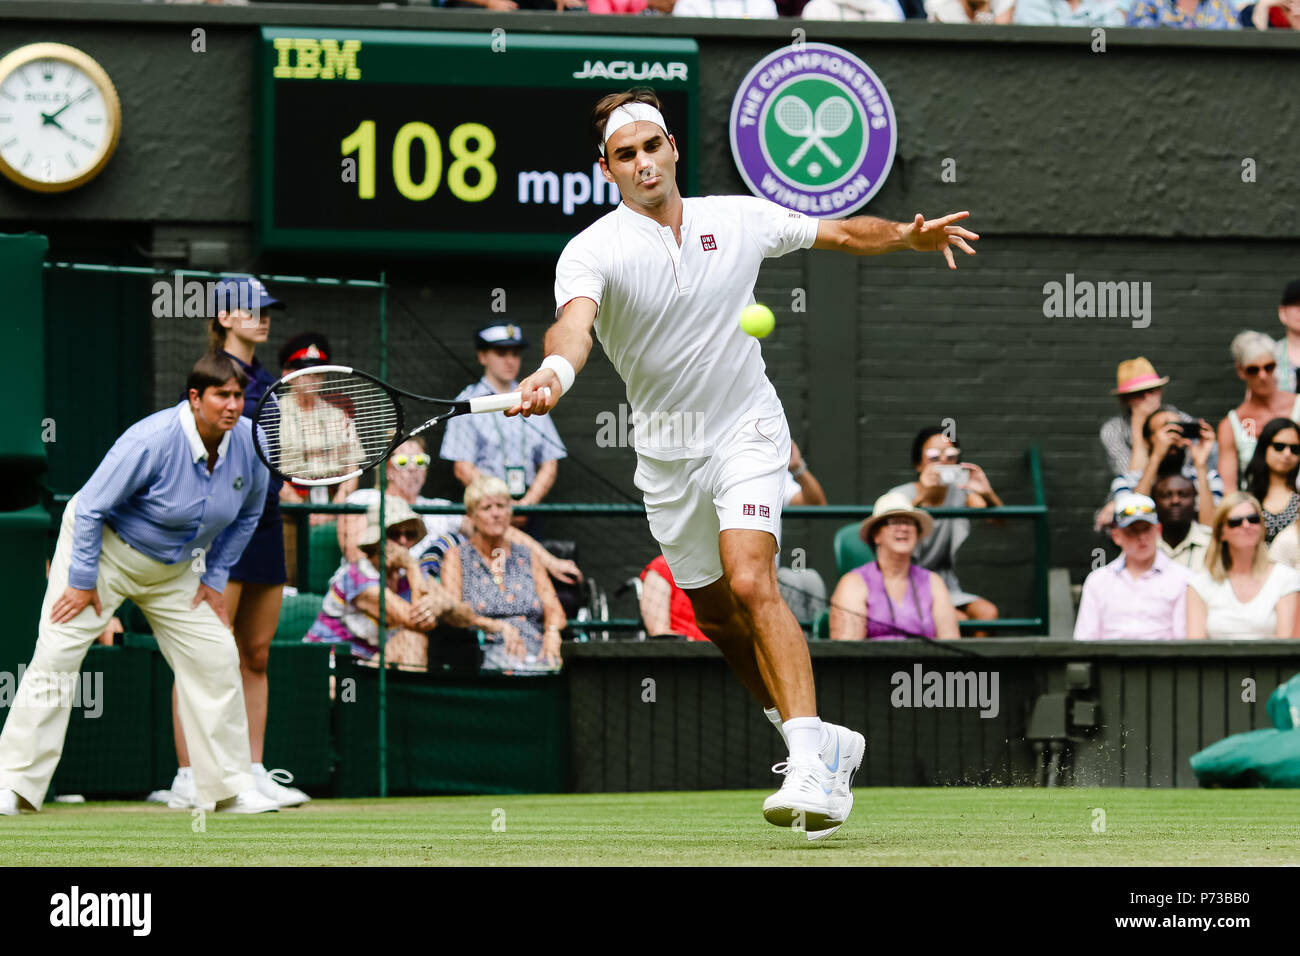 London, UK, 4th July 2018: Defending champion Roger Federer in action during Day 3 at the Wimbledon Tennis Championships 2018 at the All England Lawn Tennis and Croquet Club in London. Credit: Frank Molter/Alamy Live news Stock Photo